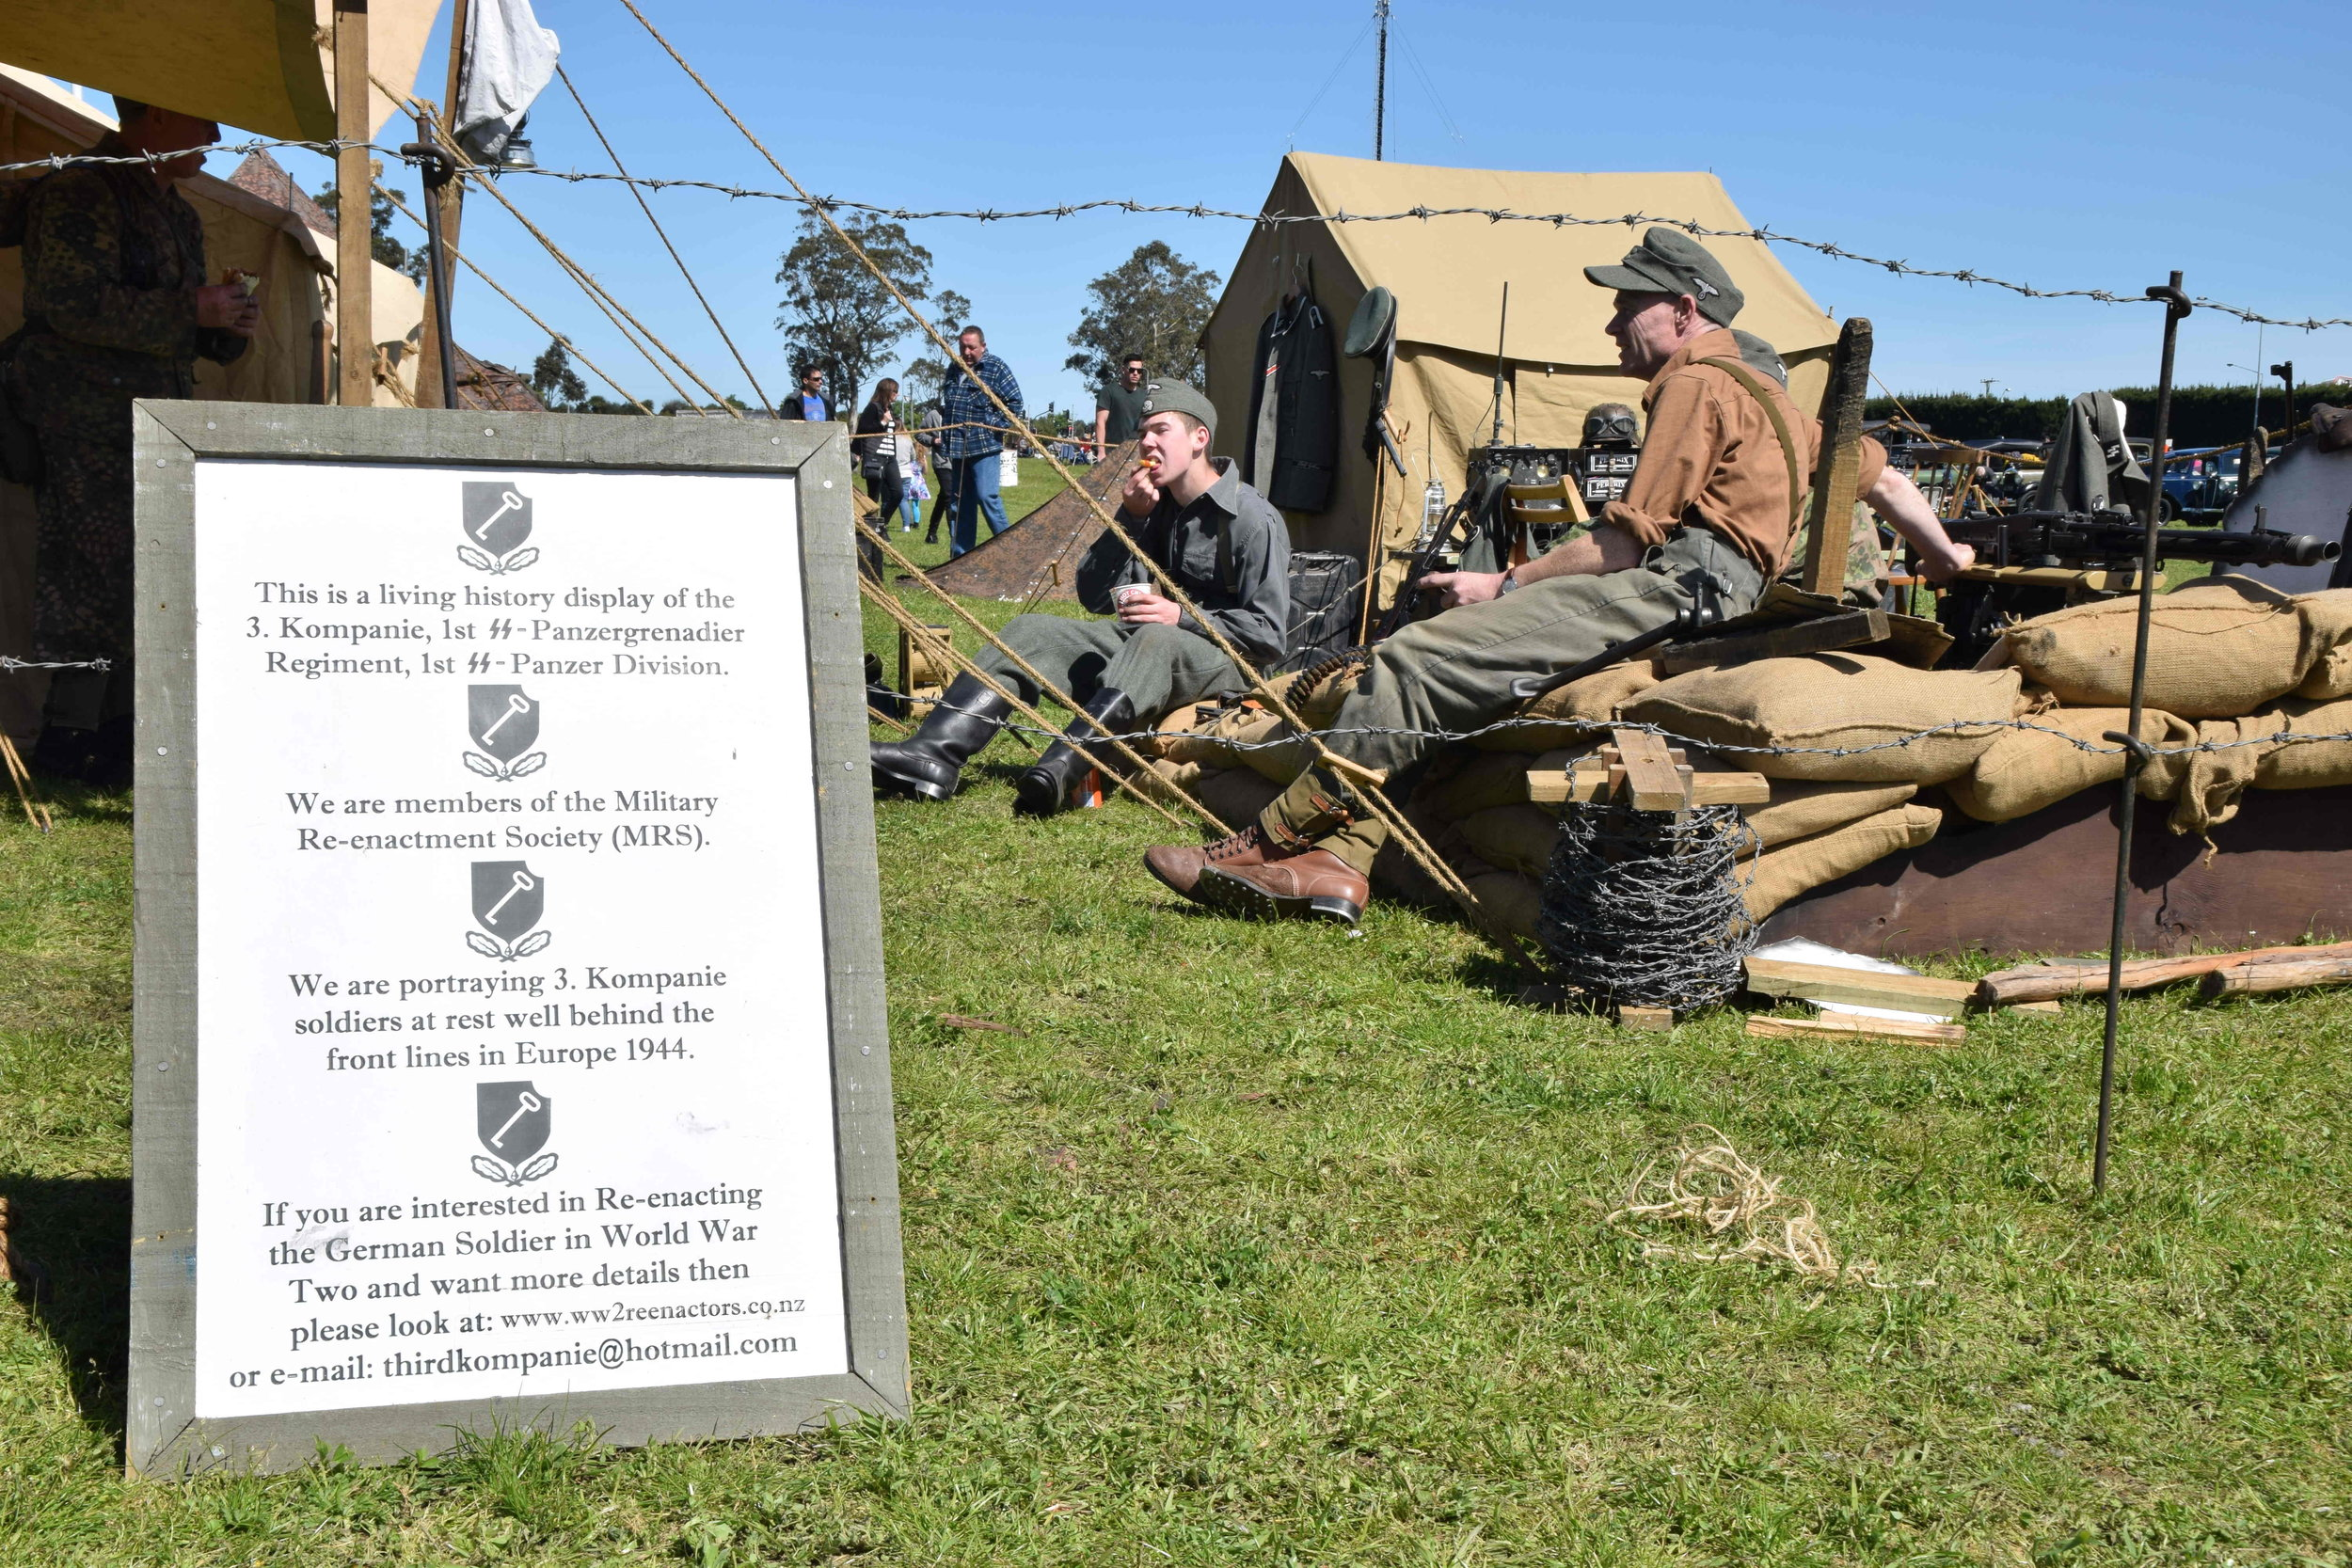 Living history display by Military Re-enactment Society